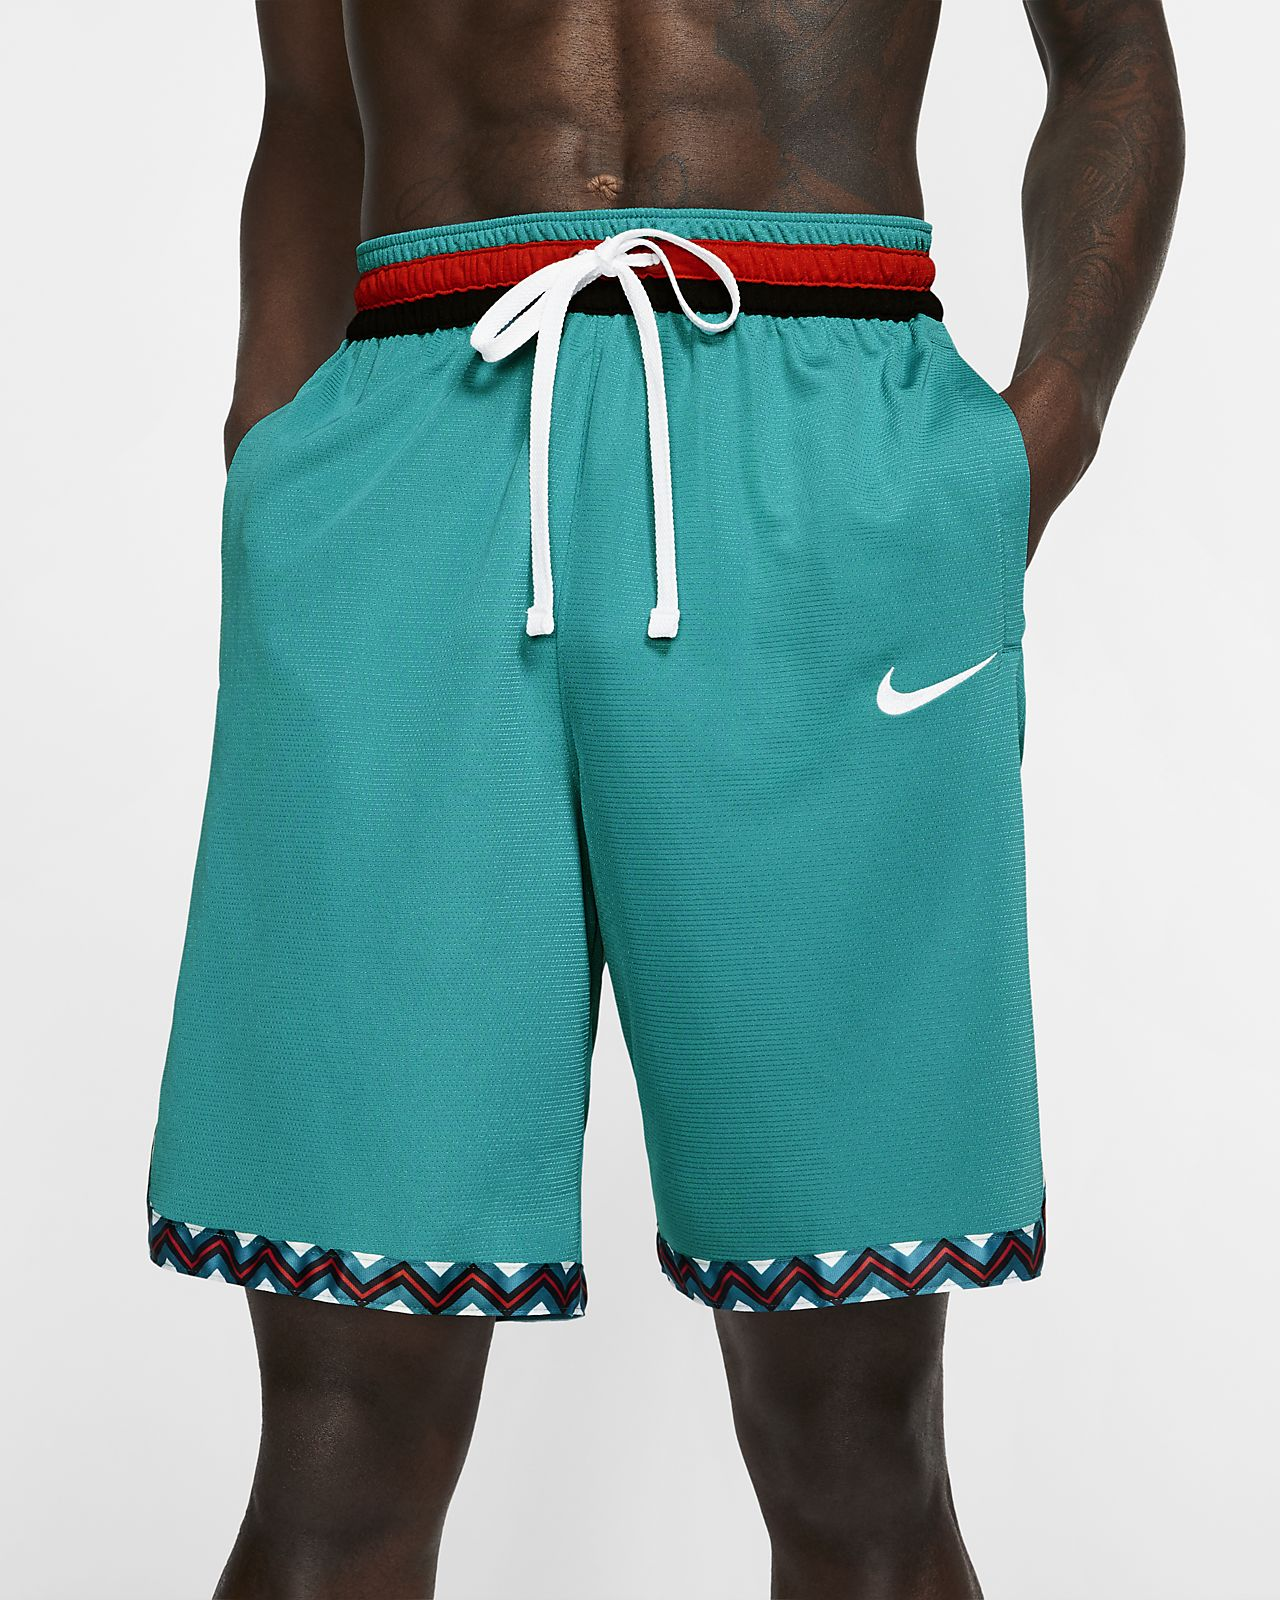 Nike Dri-FIT DNA-basketballshorts